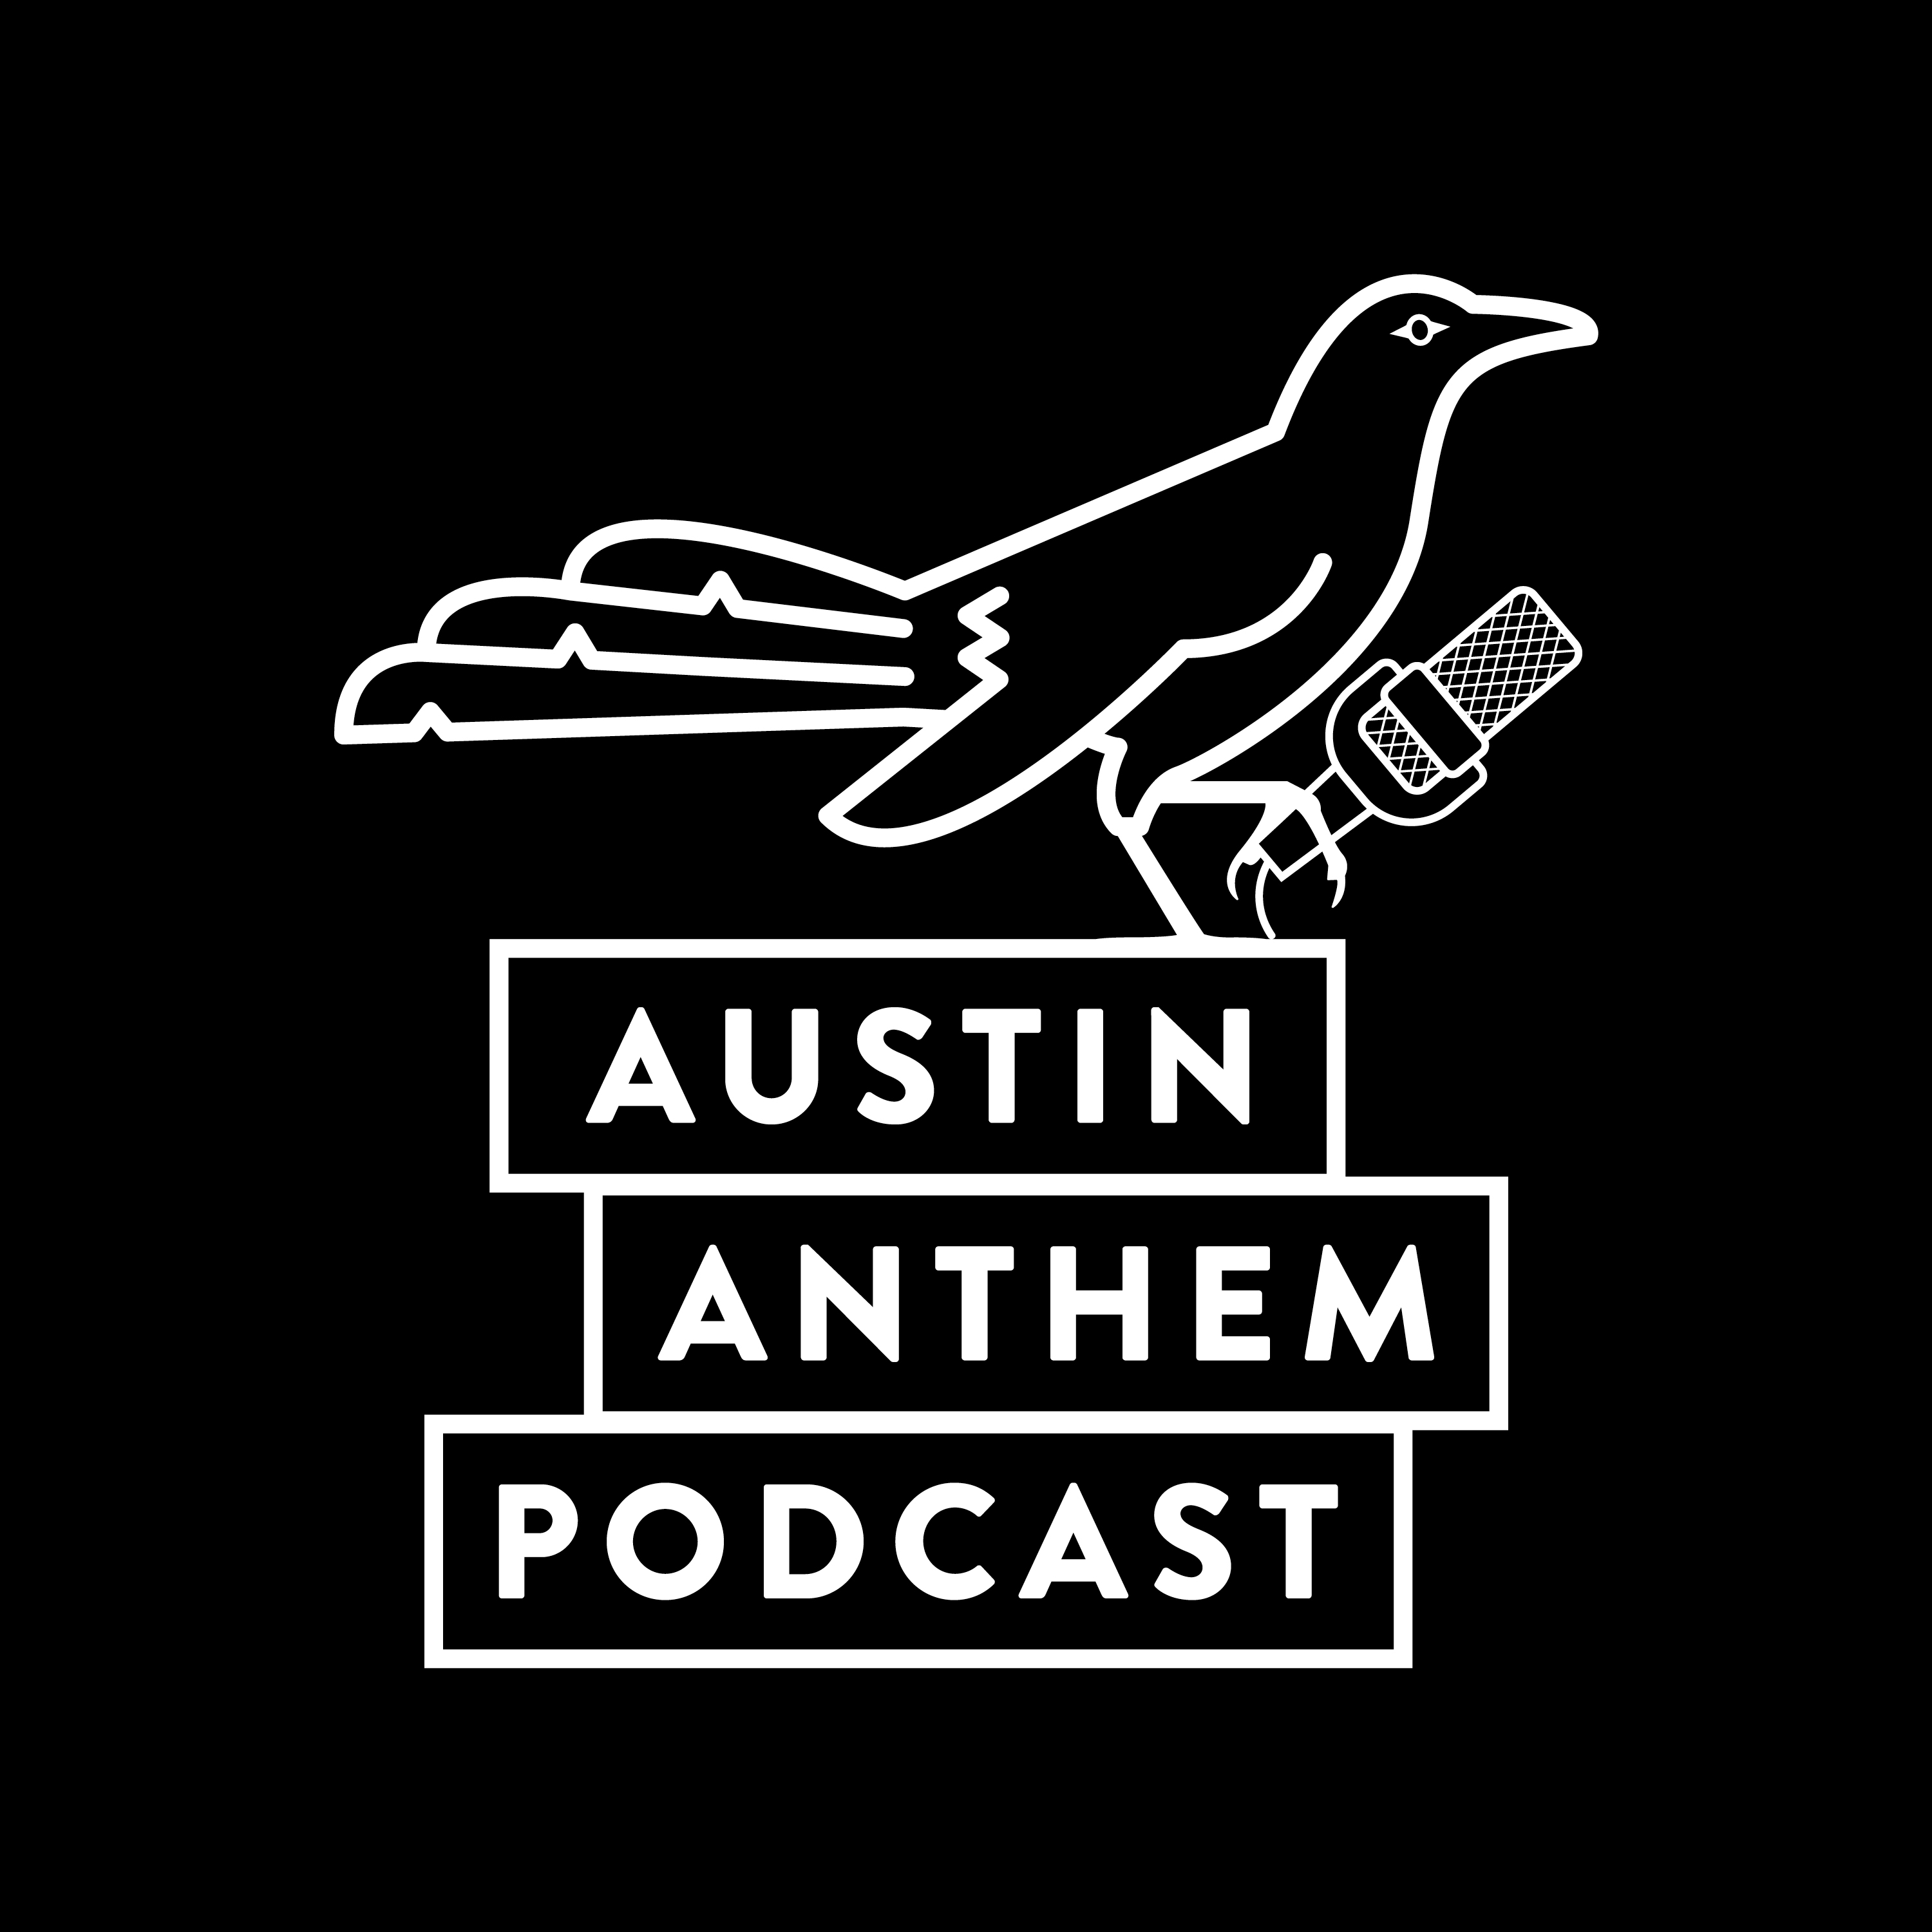 MINI Episode 22 - The Austin Anthem Podcast - The Fill-In Take Over